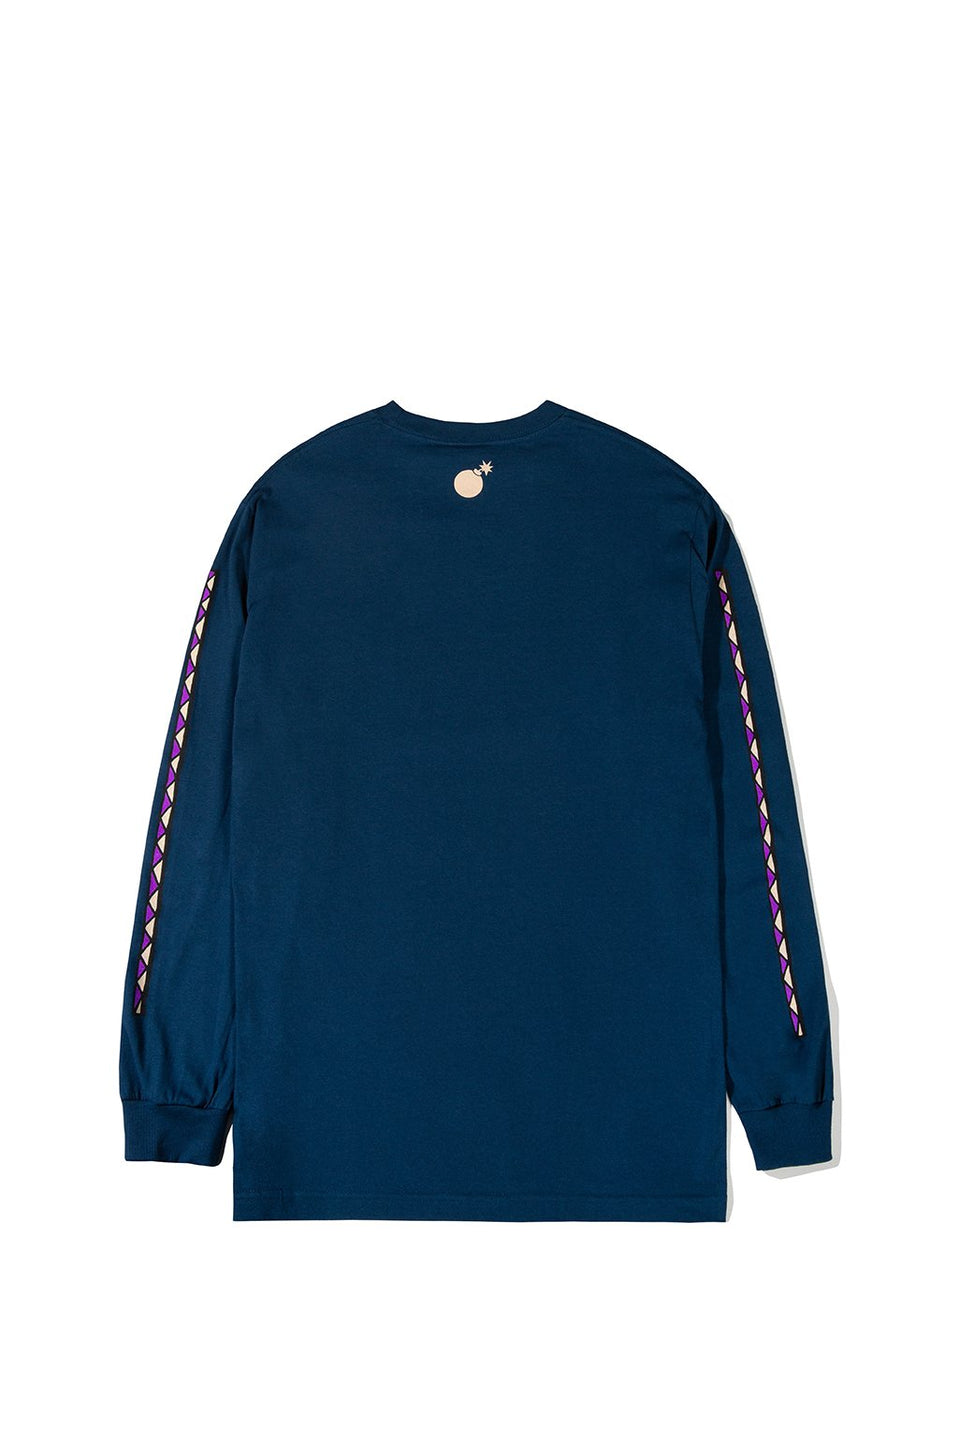 Beach Slant L/S Shirt